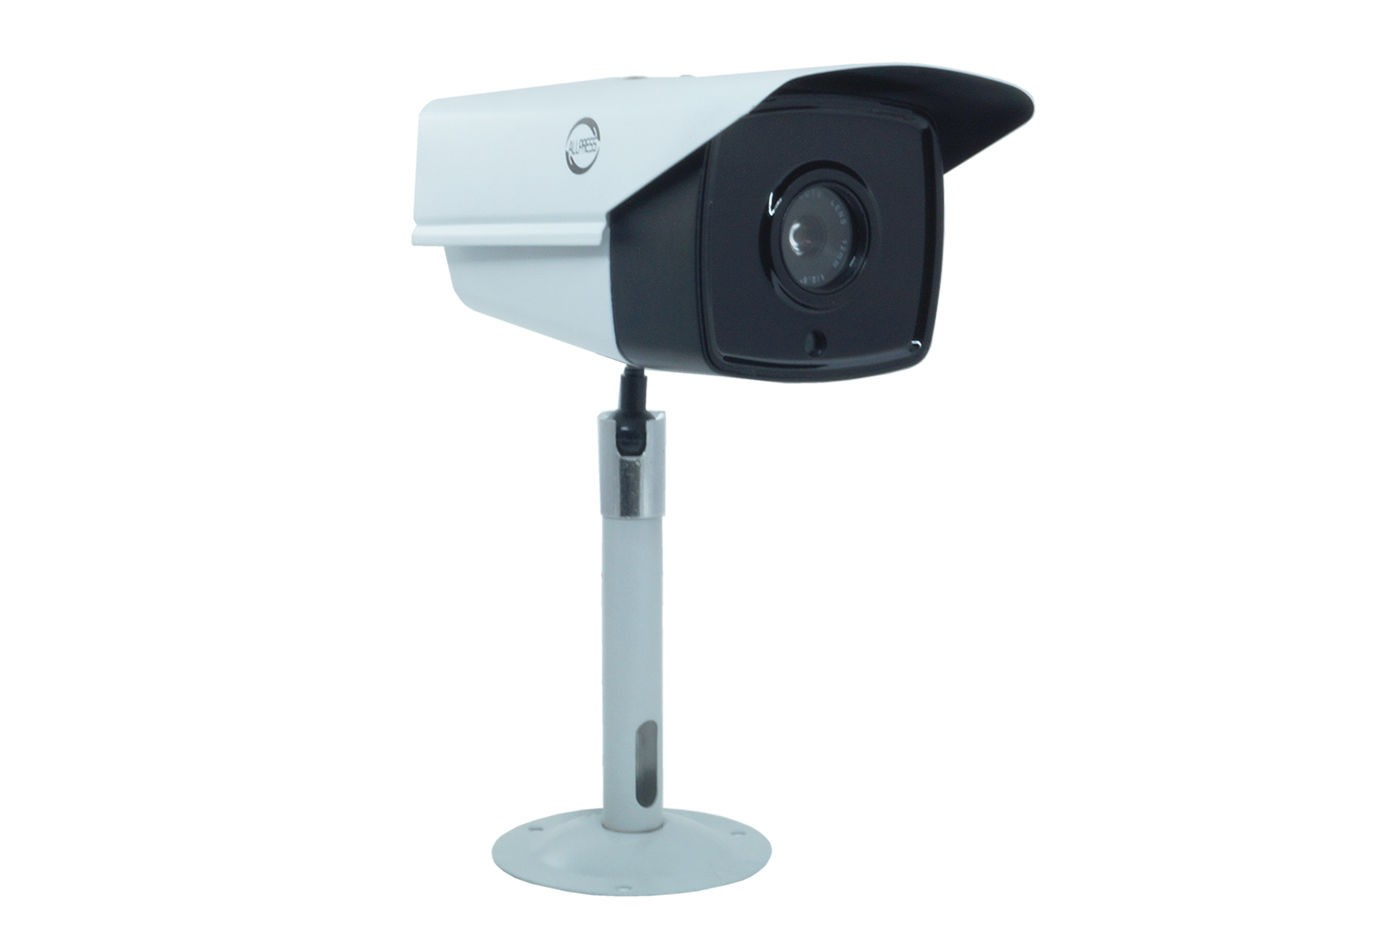 Telecamera videosorveglianza ahd led array mp ir color cctv camera